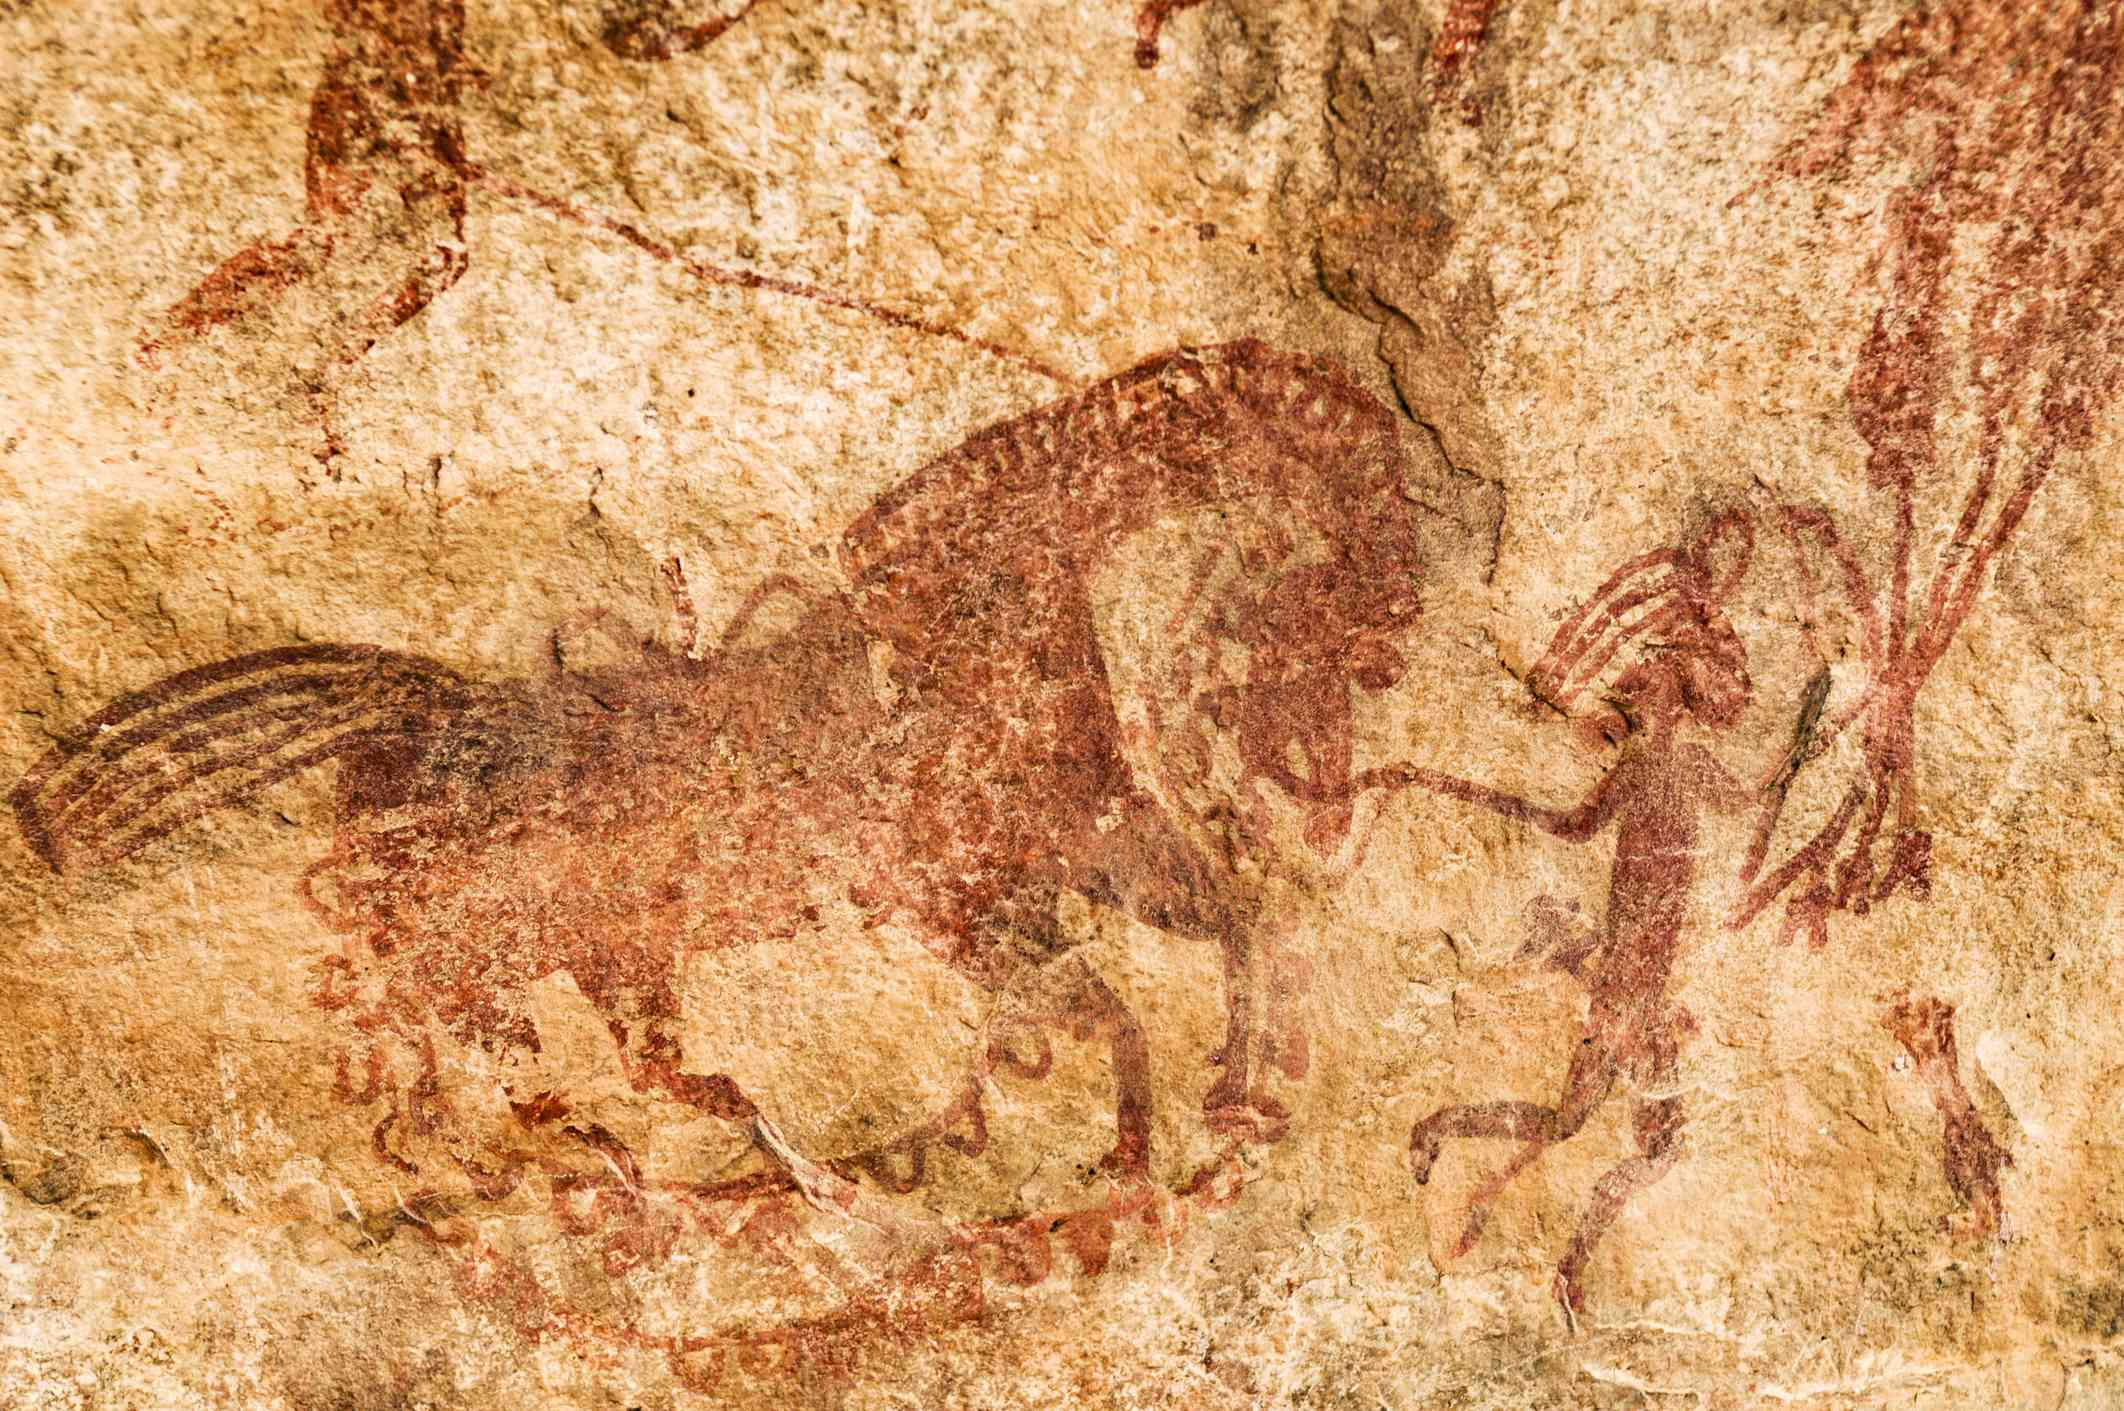 Cave painting from the upper paleolithic age